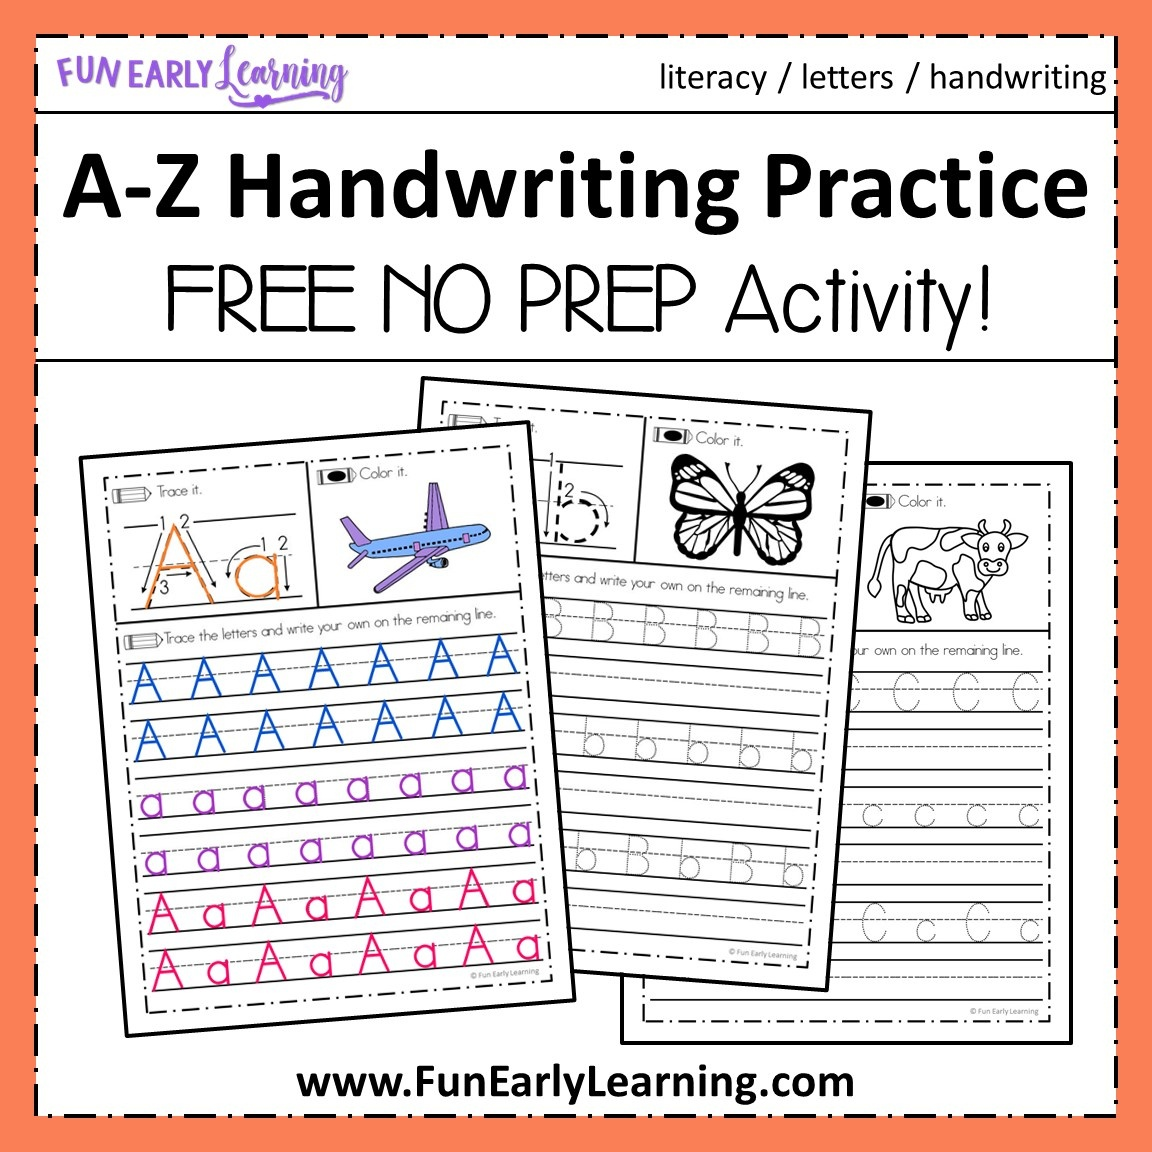 Free Printable Handwriting Sheets For Kindergarten